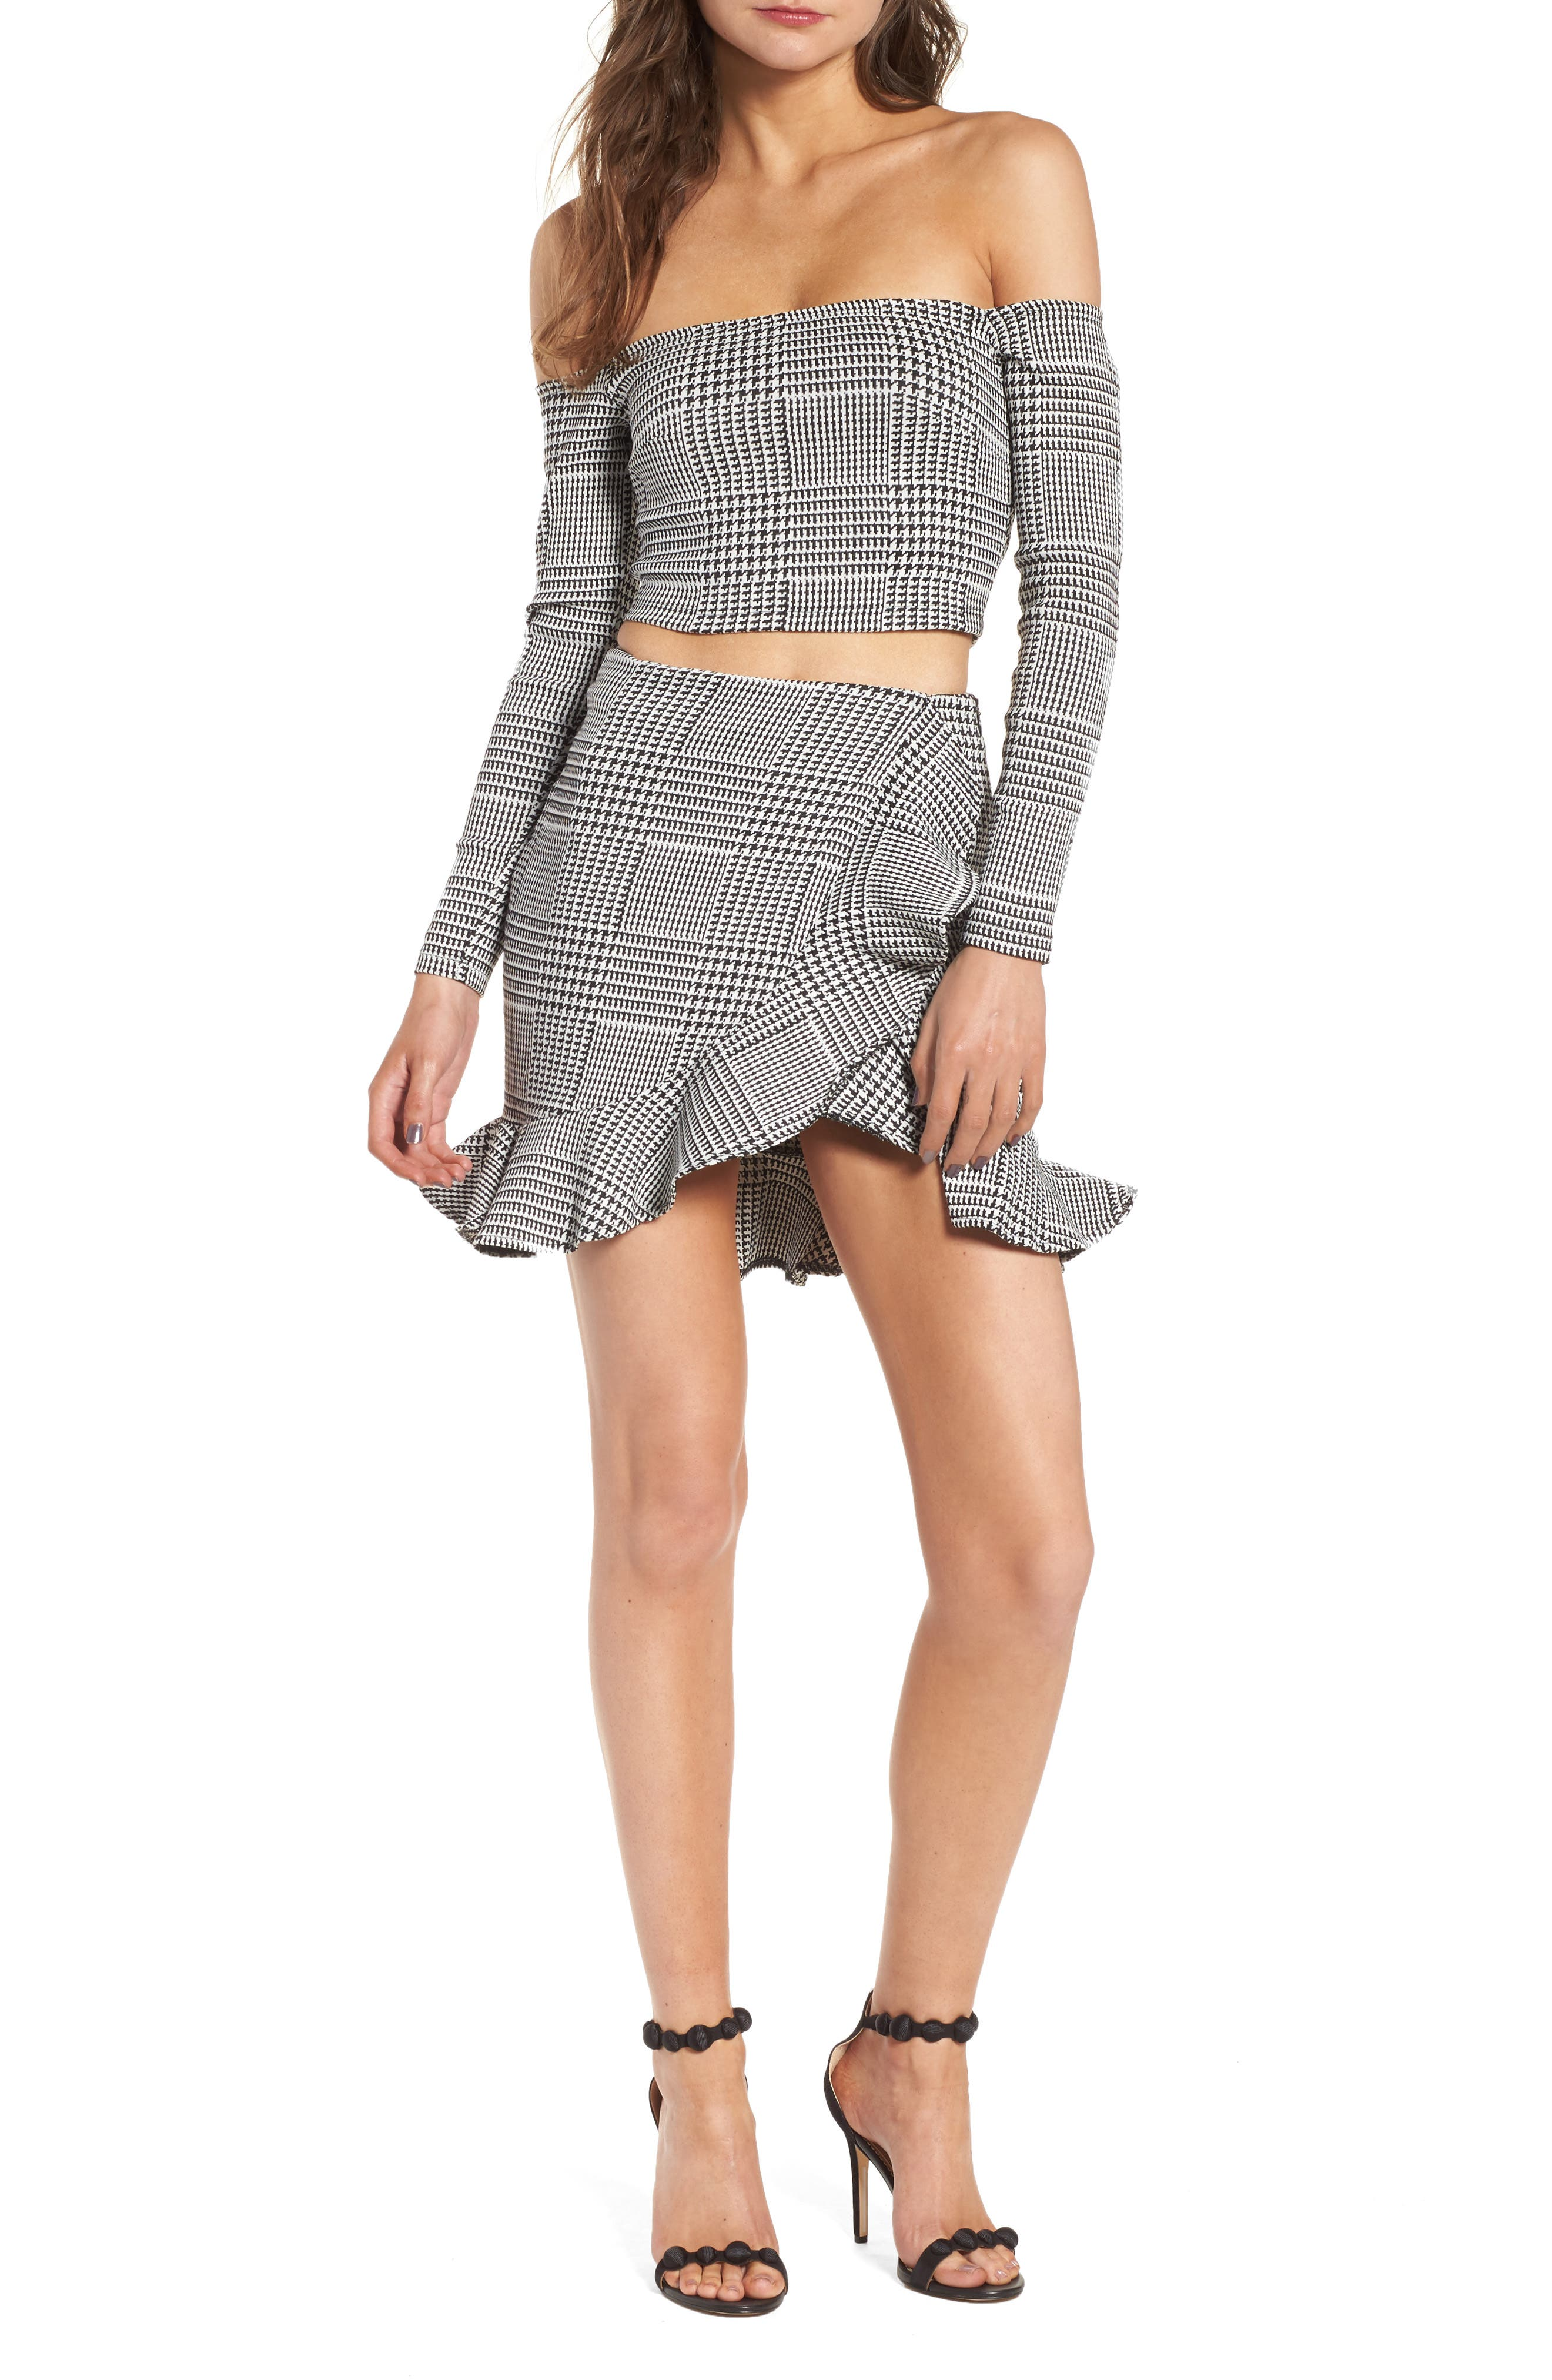 Affection Ruffle Houndstooth Skirt,                             Alternate thumbnail 7, color,                             020